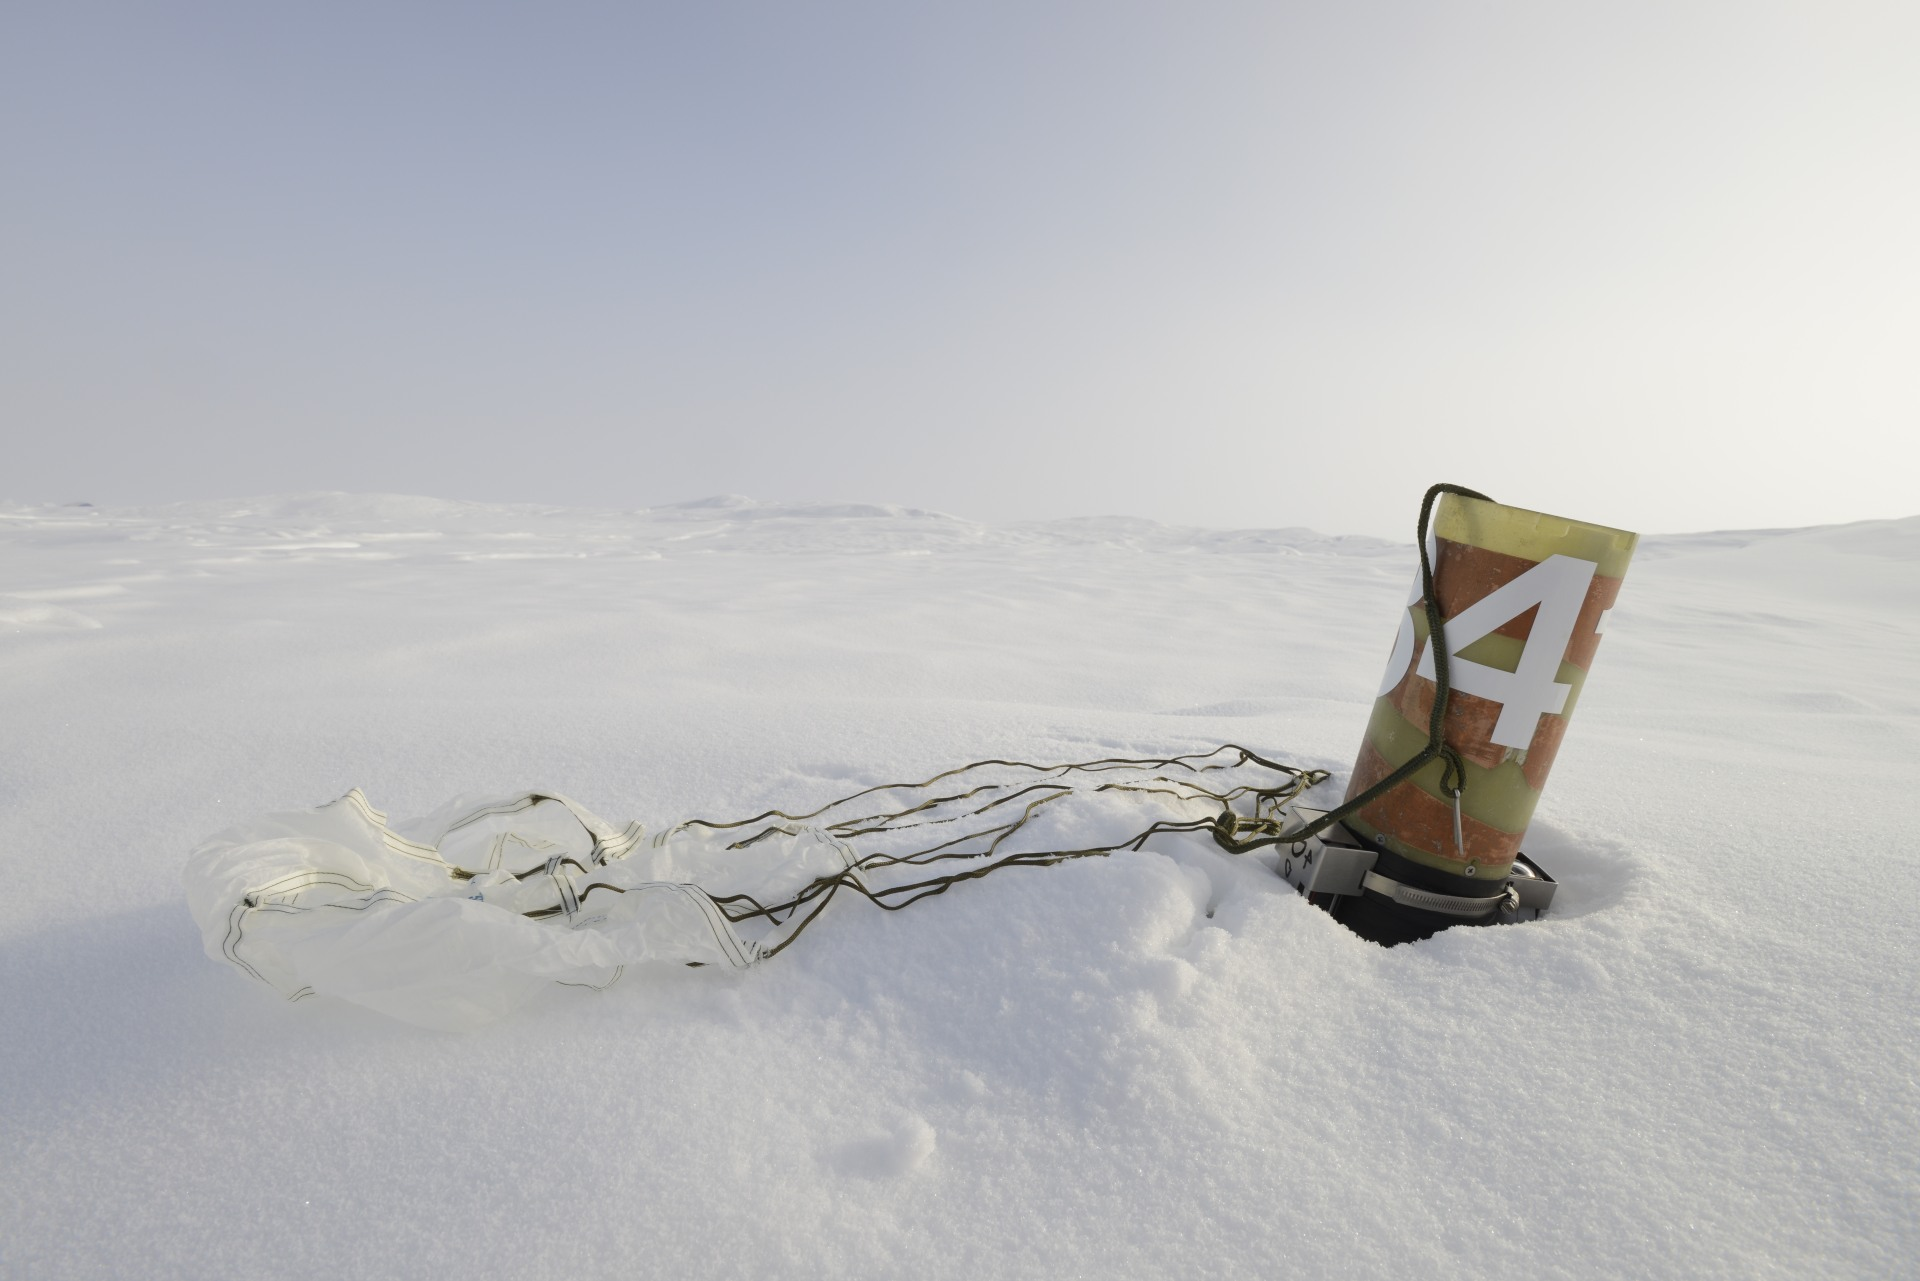 The icepick geobuoy hits the ice and detaches its drag chute.